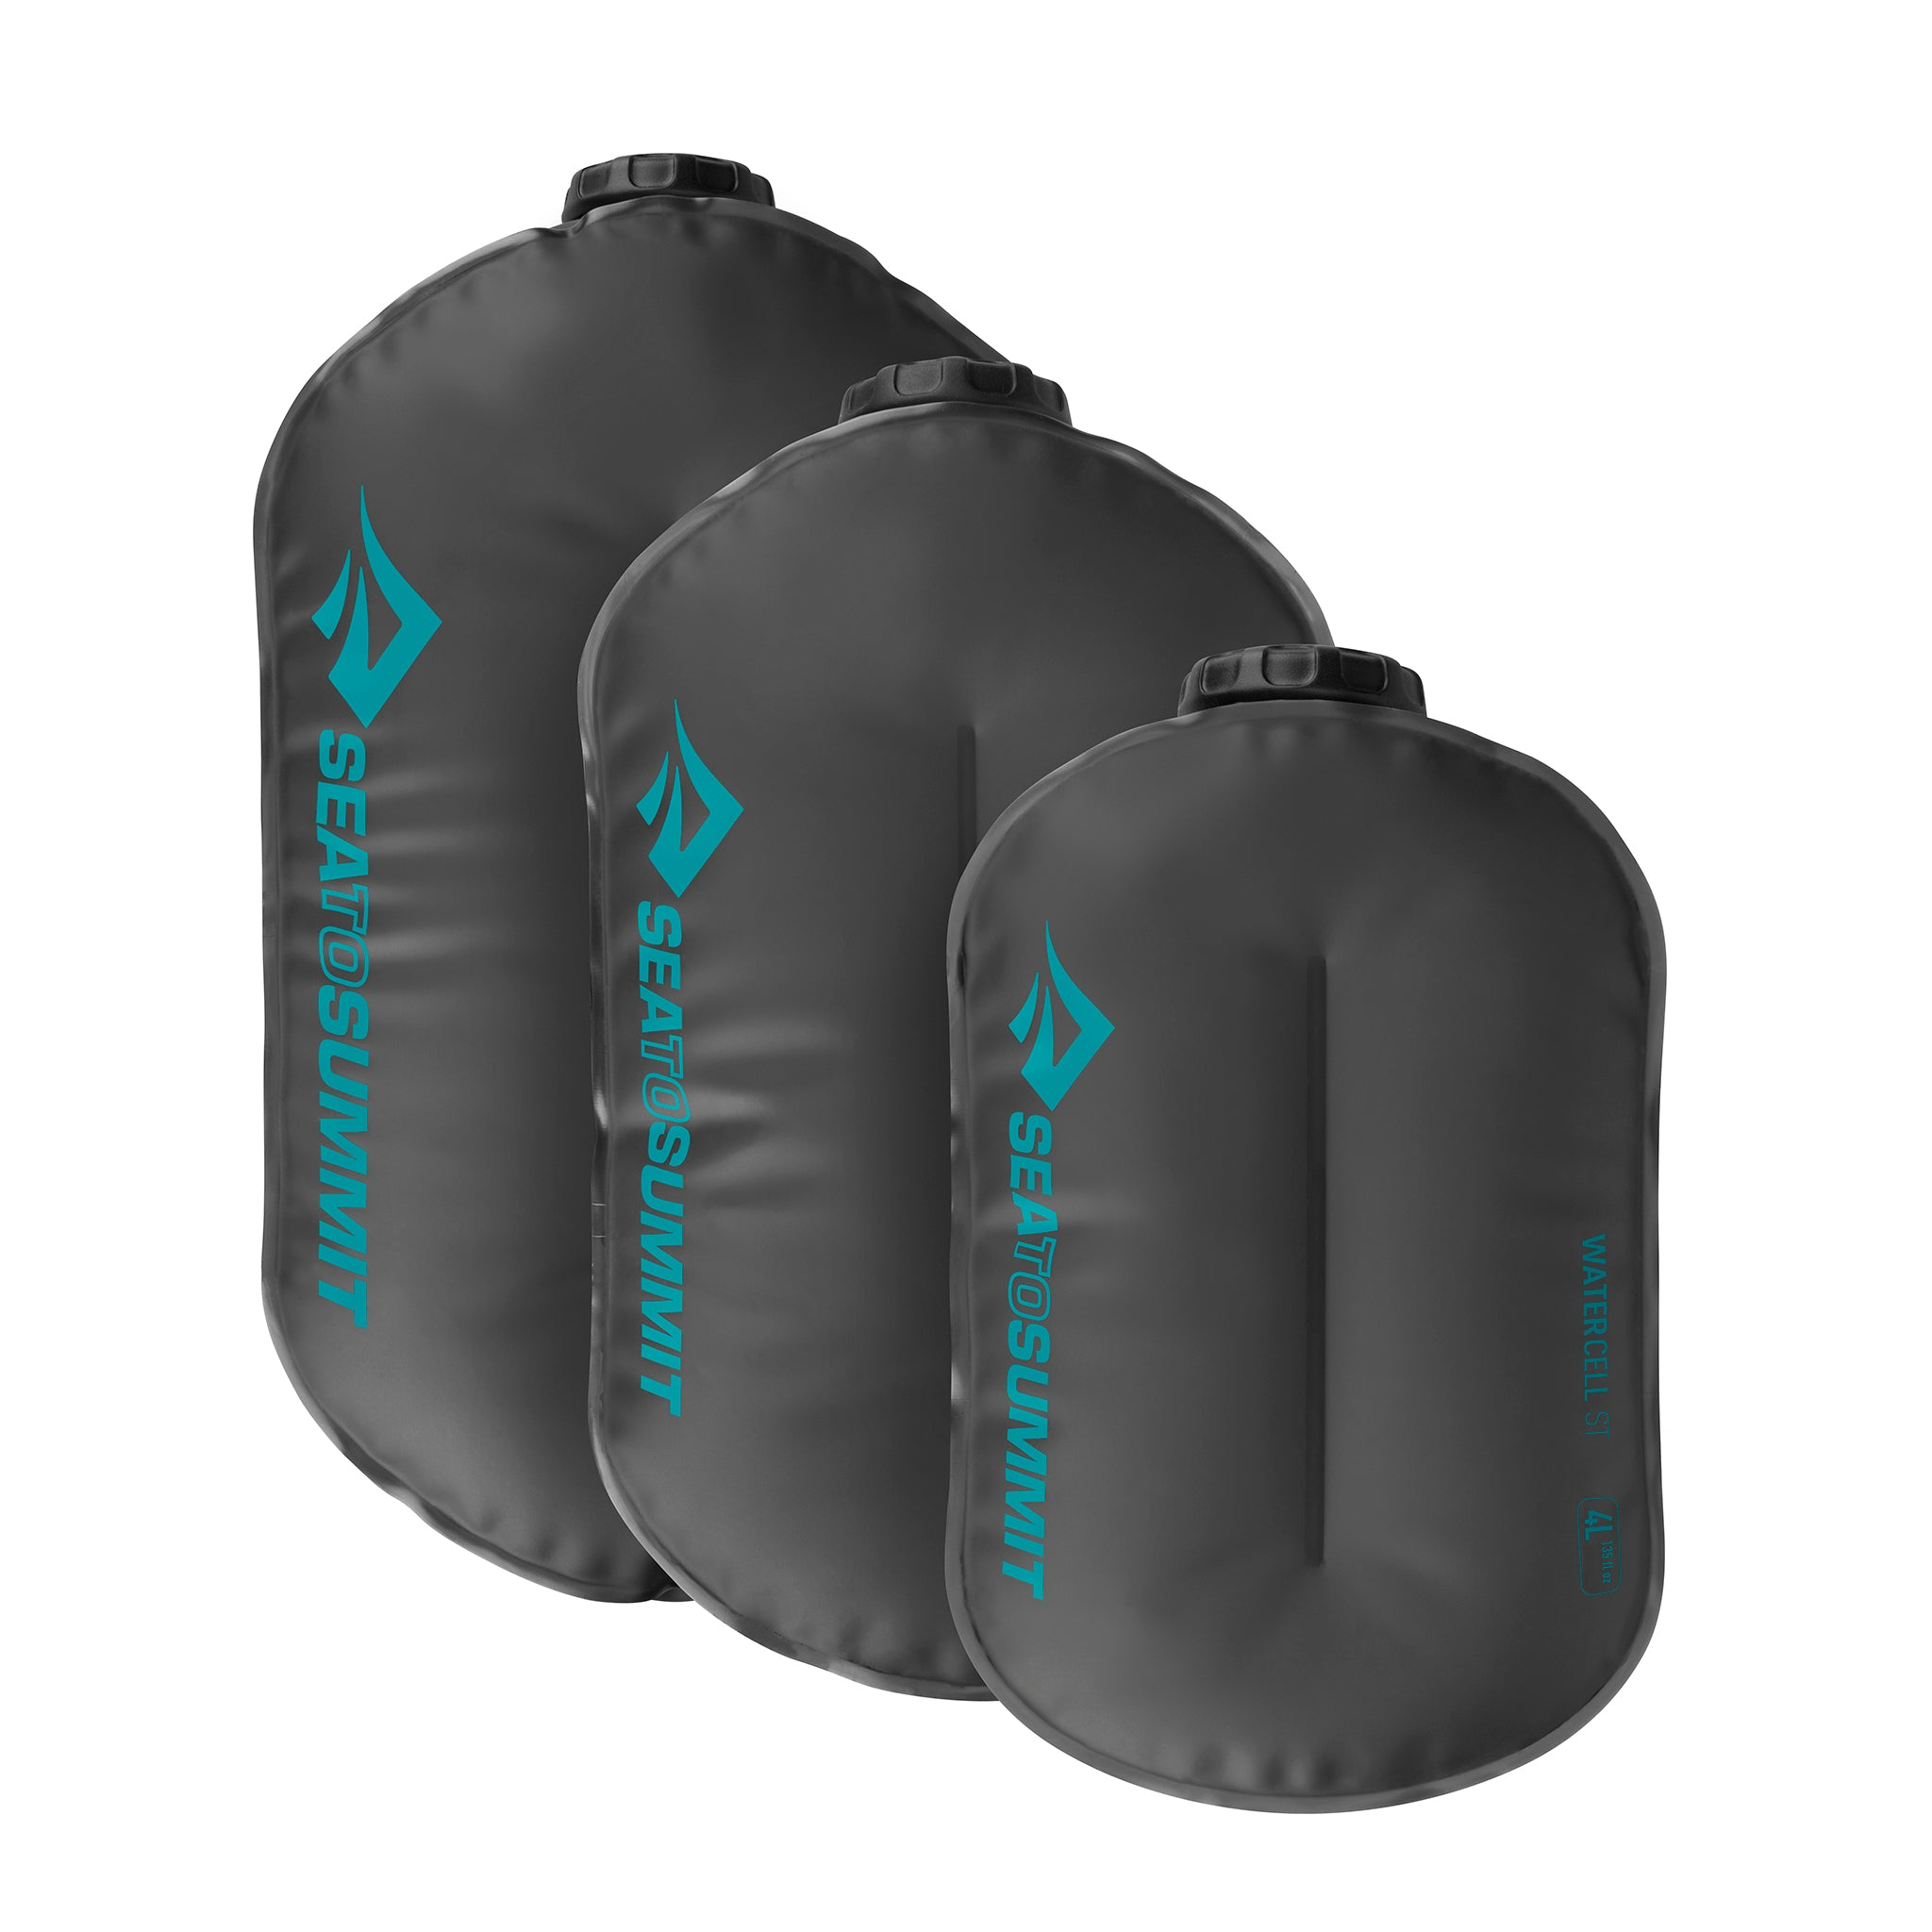 Wartercell ST _ 4L 6L 10L reservoir water bag